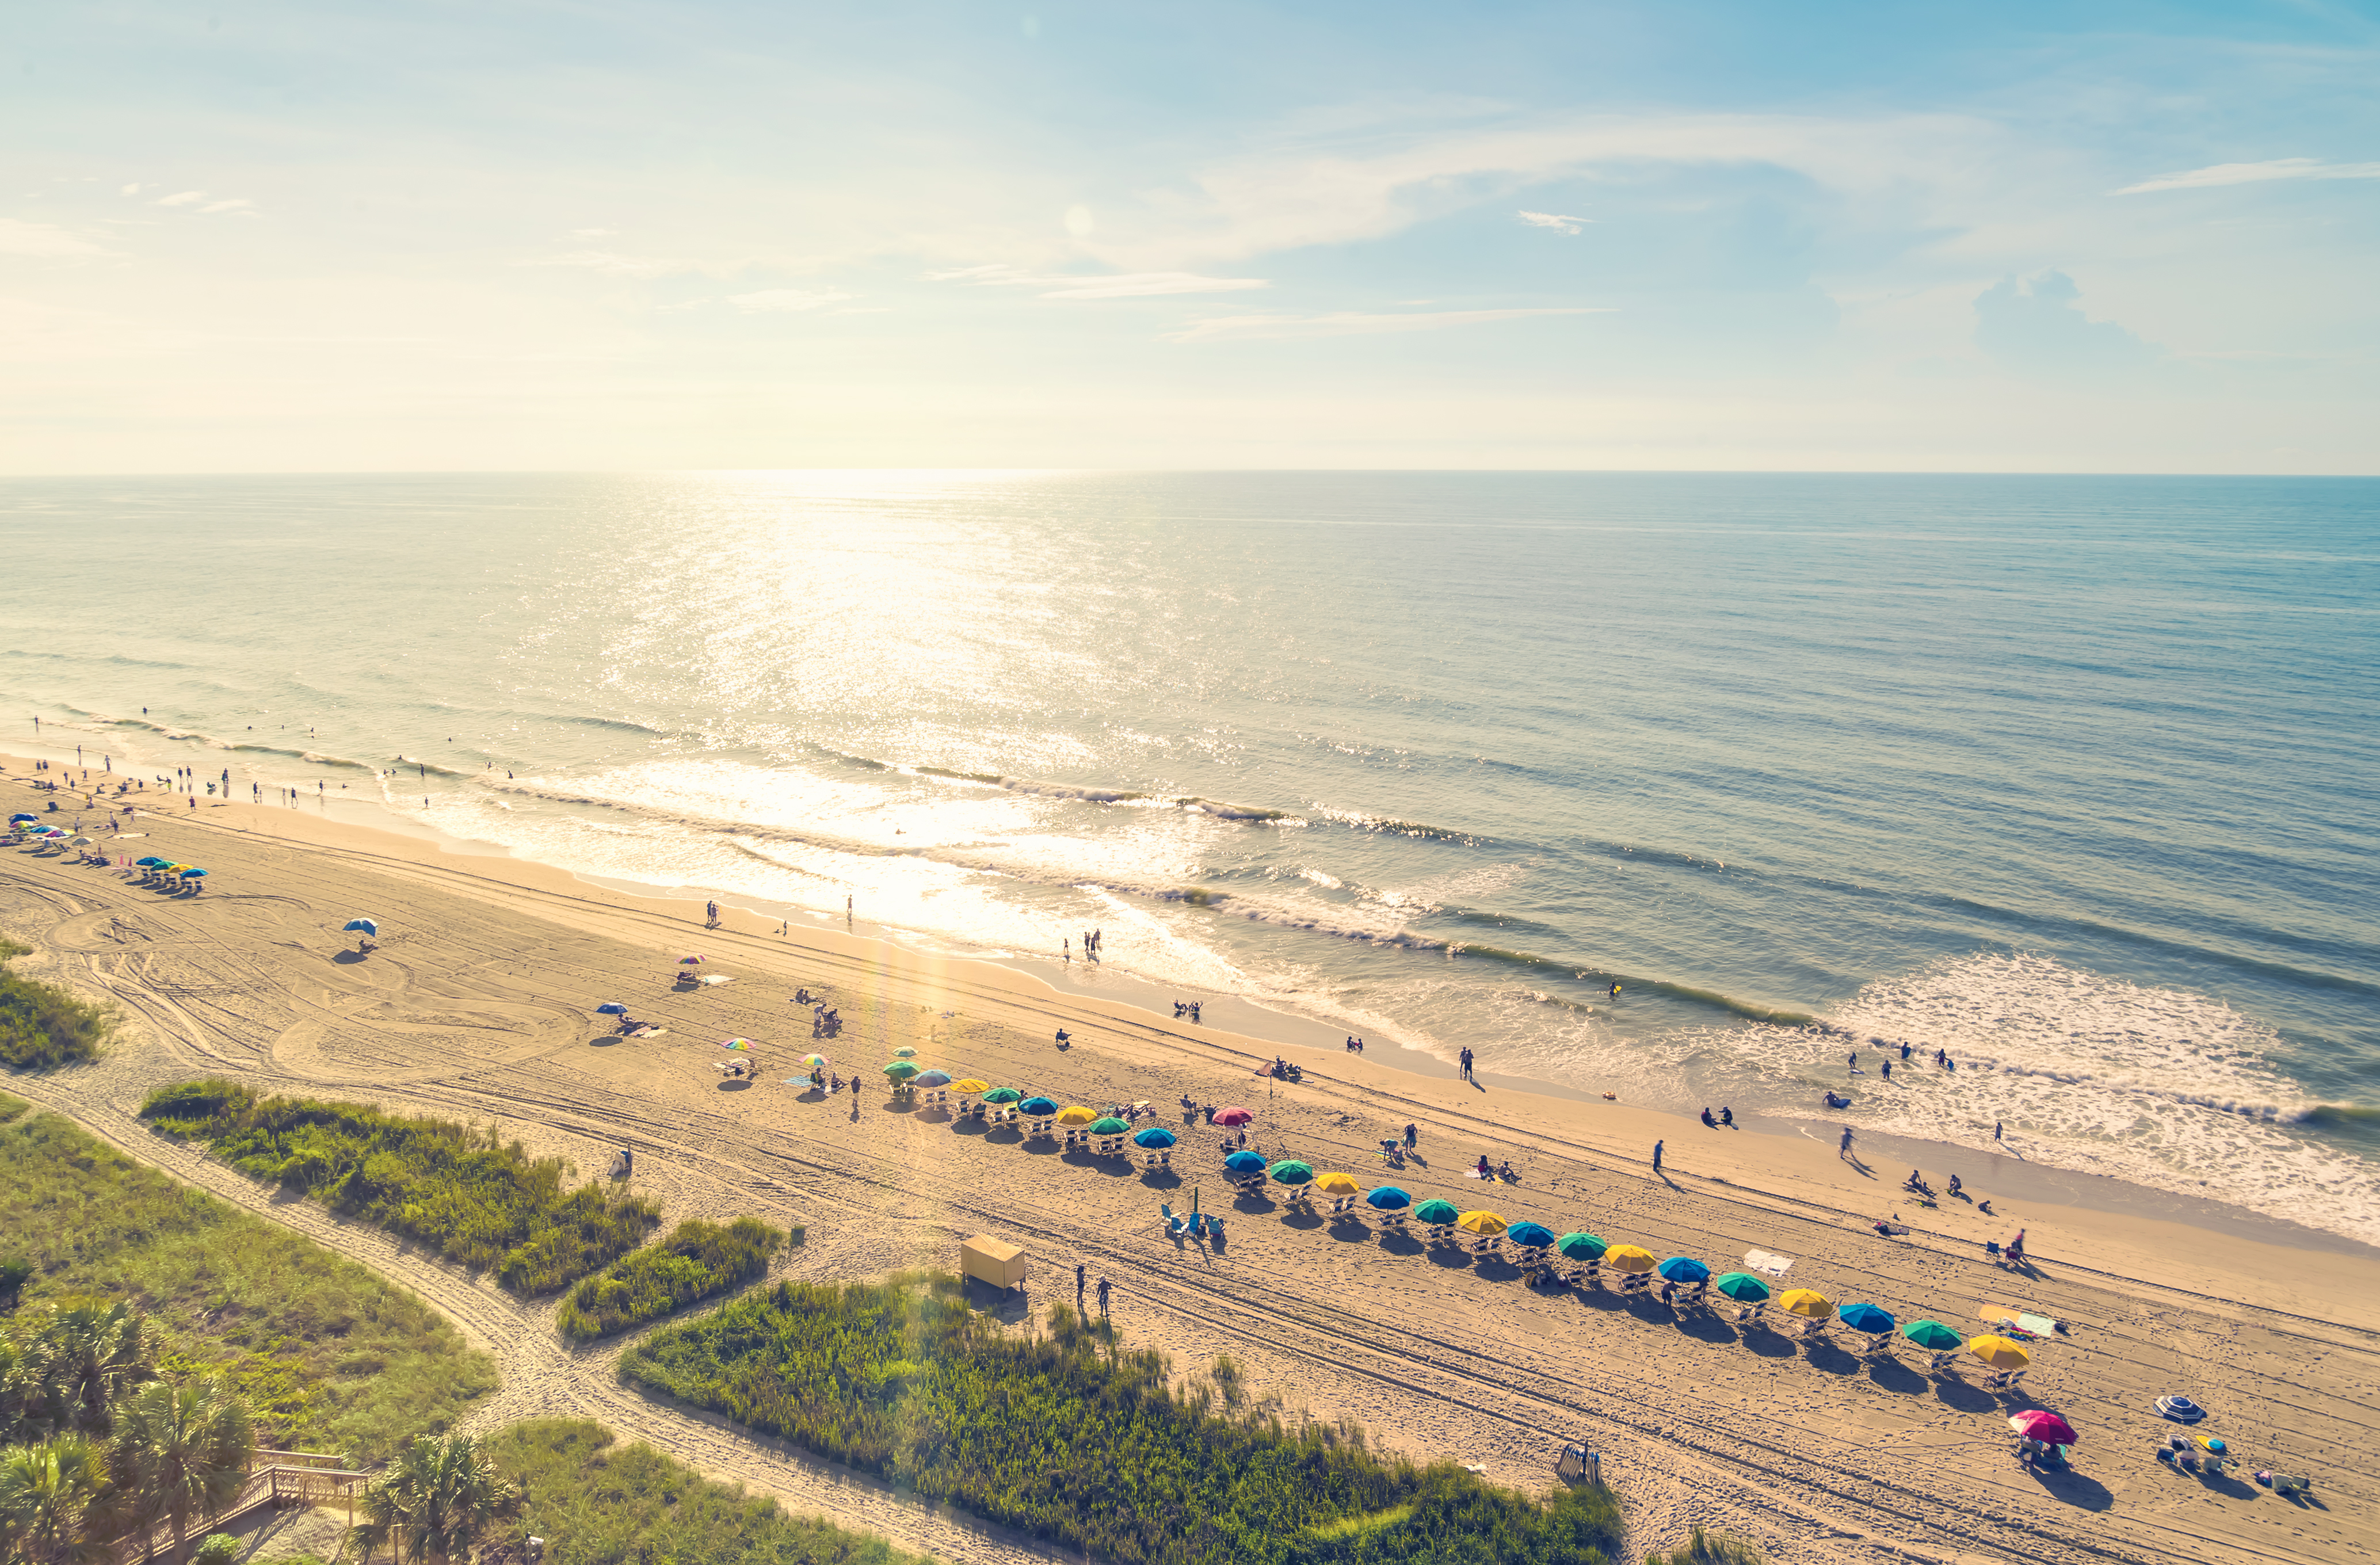 Visitors' Guide for Myrtle Beach, South Carolina | USA Today